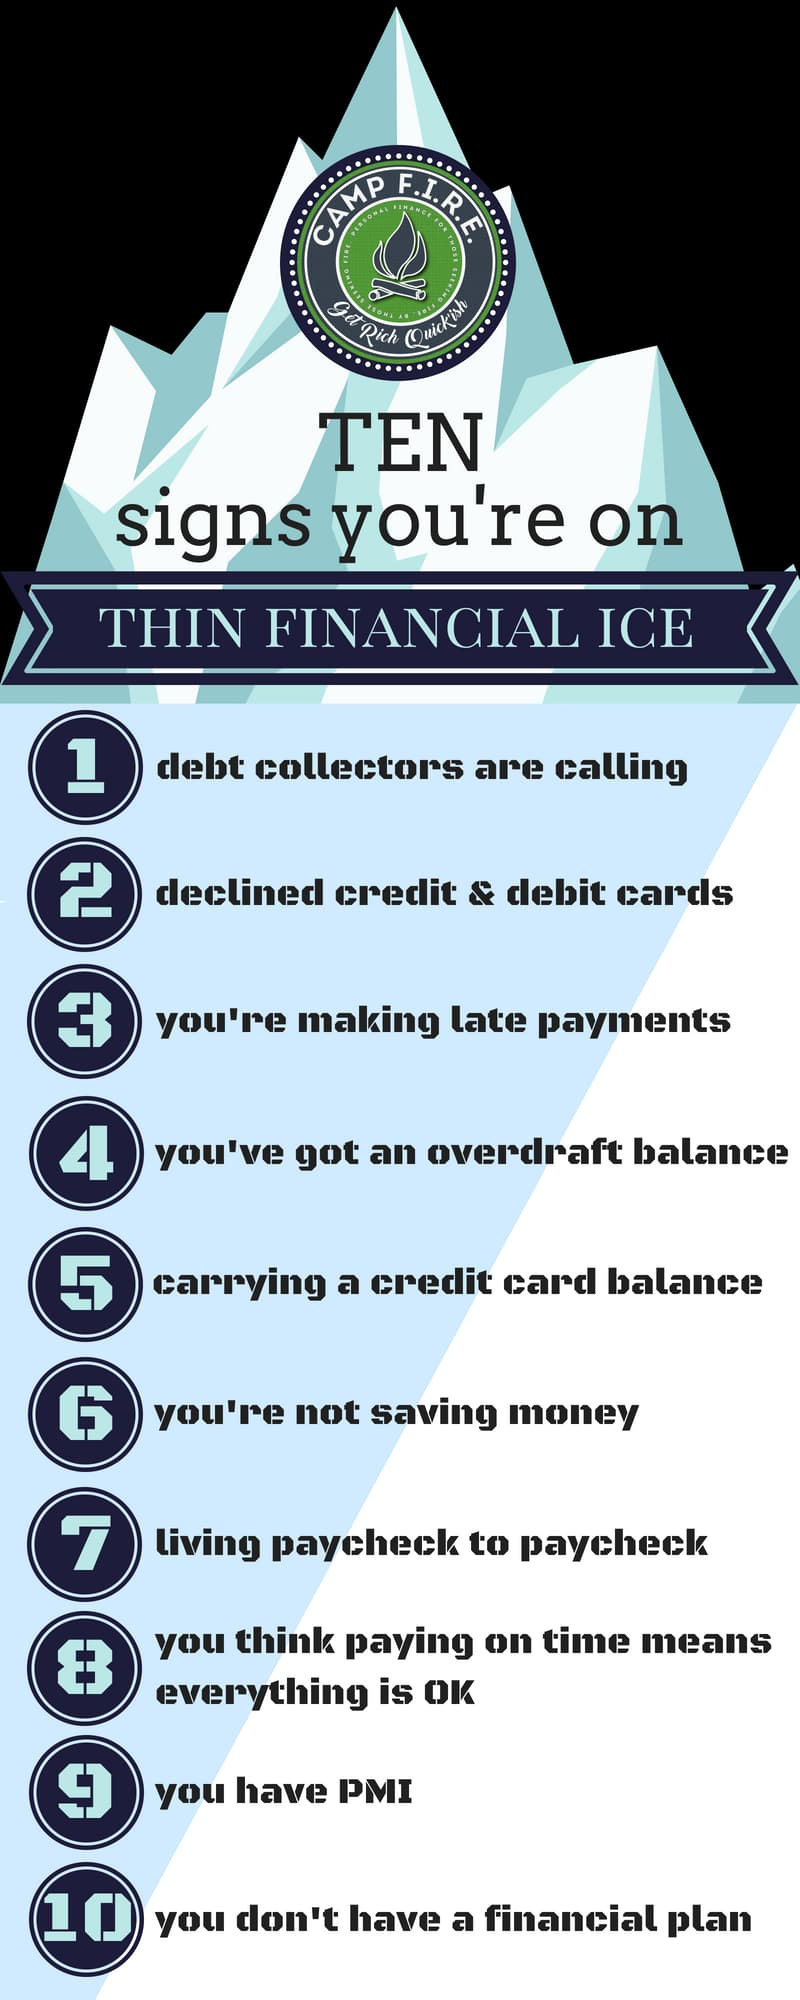 10 Signs That You're On Thin Financial Ice